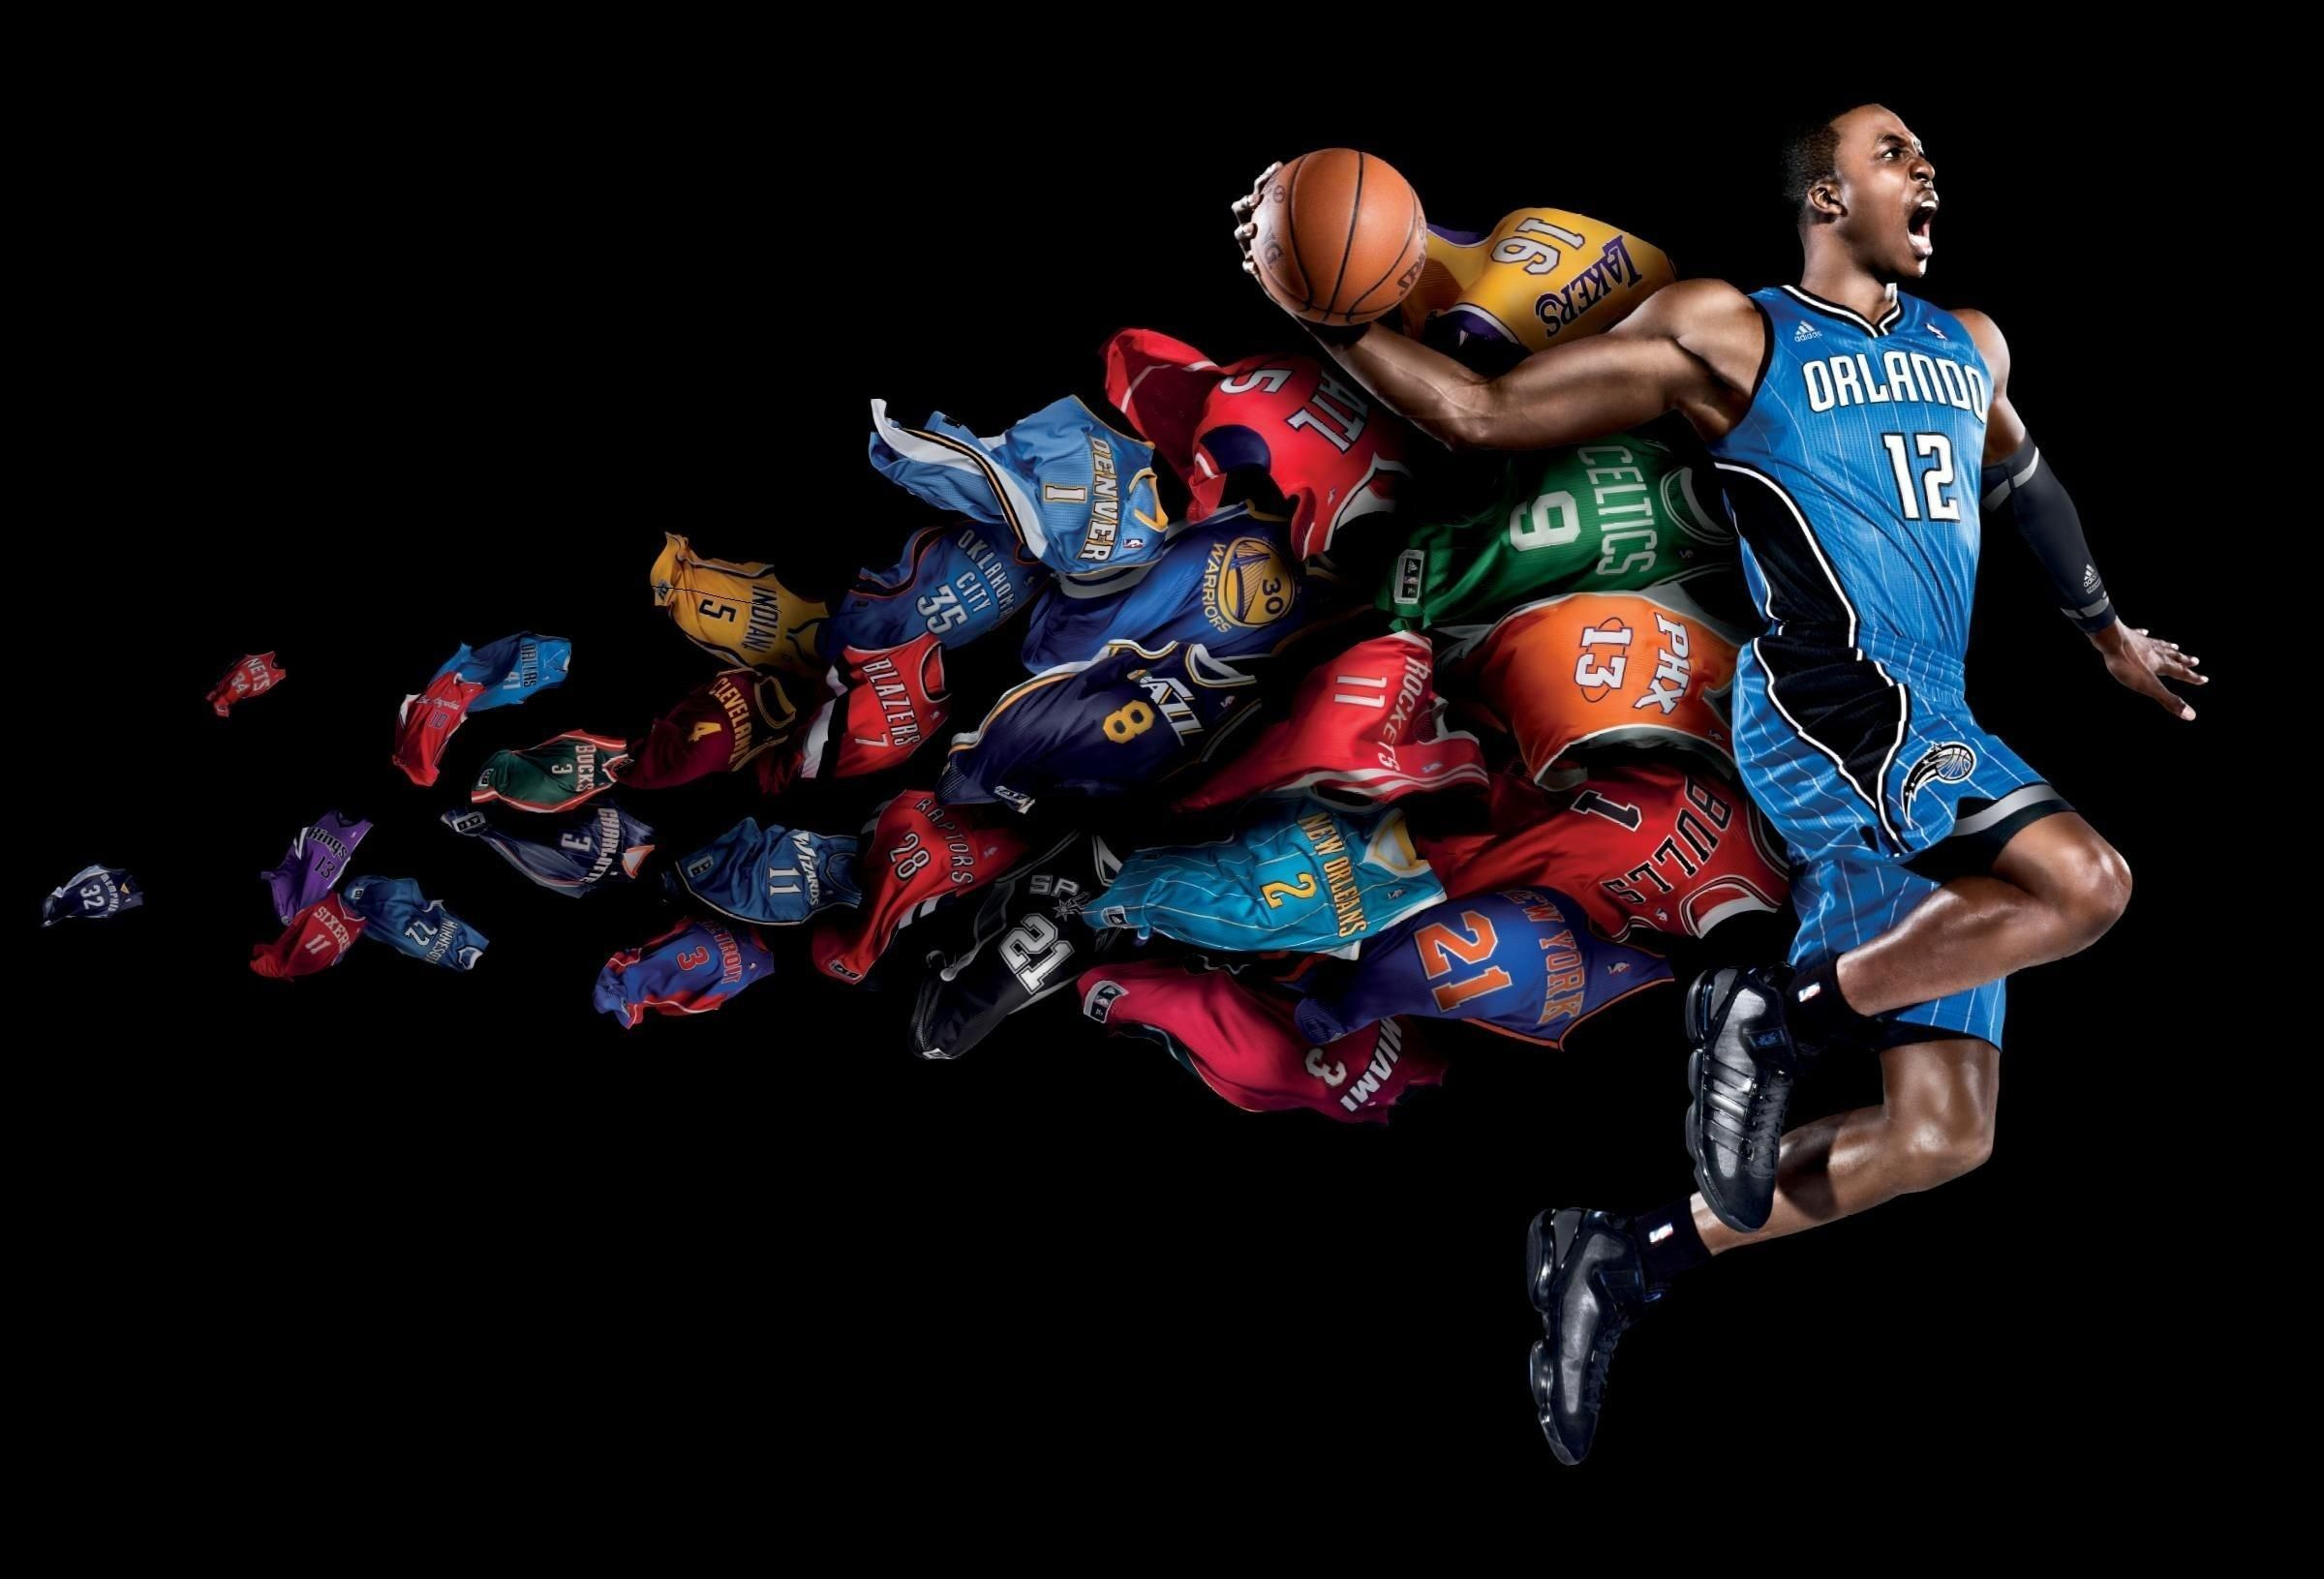 awesome basketball wallpapers group (79+)